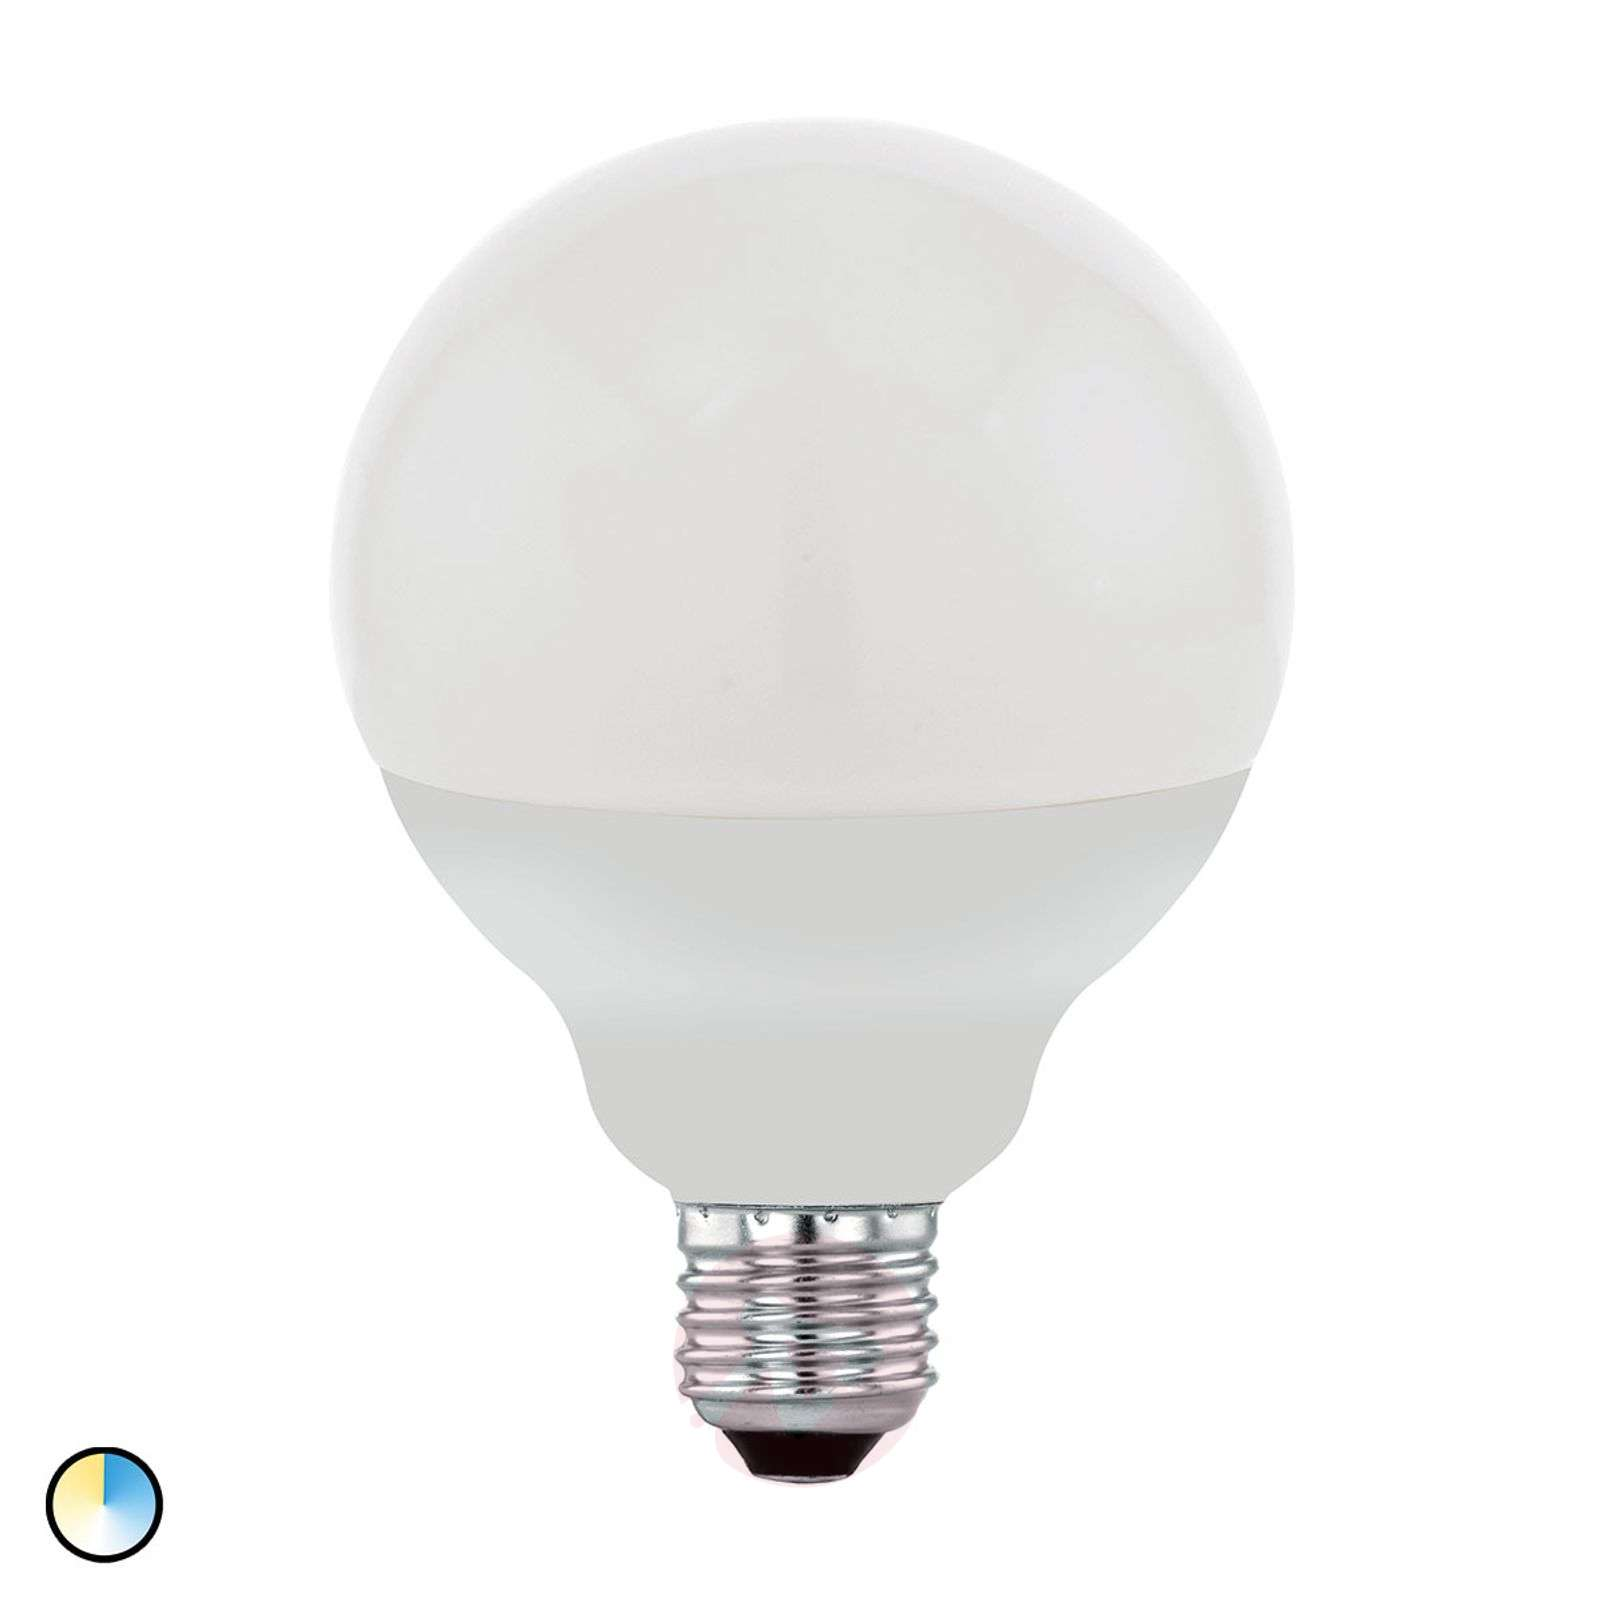 EGLO connect ampoule globe LED E27 13W 2700-6500K-3032148-02